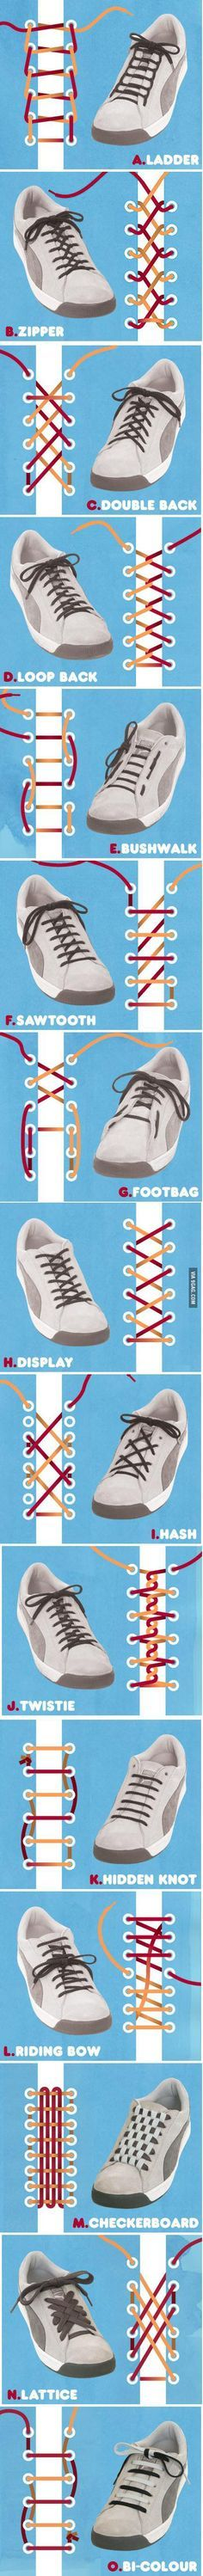 how to tie shoelaces in cool ways